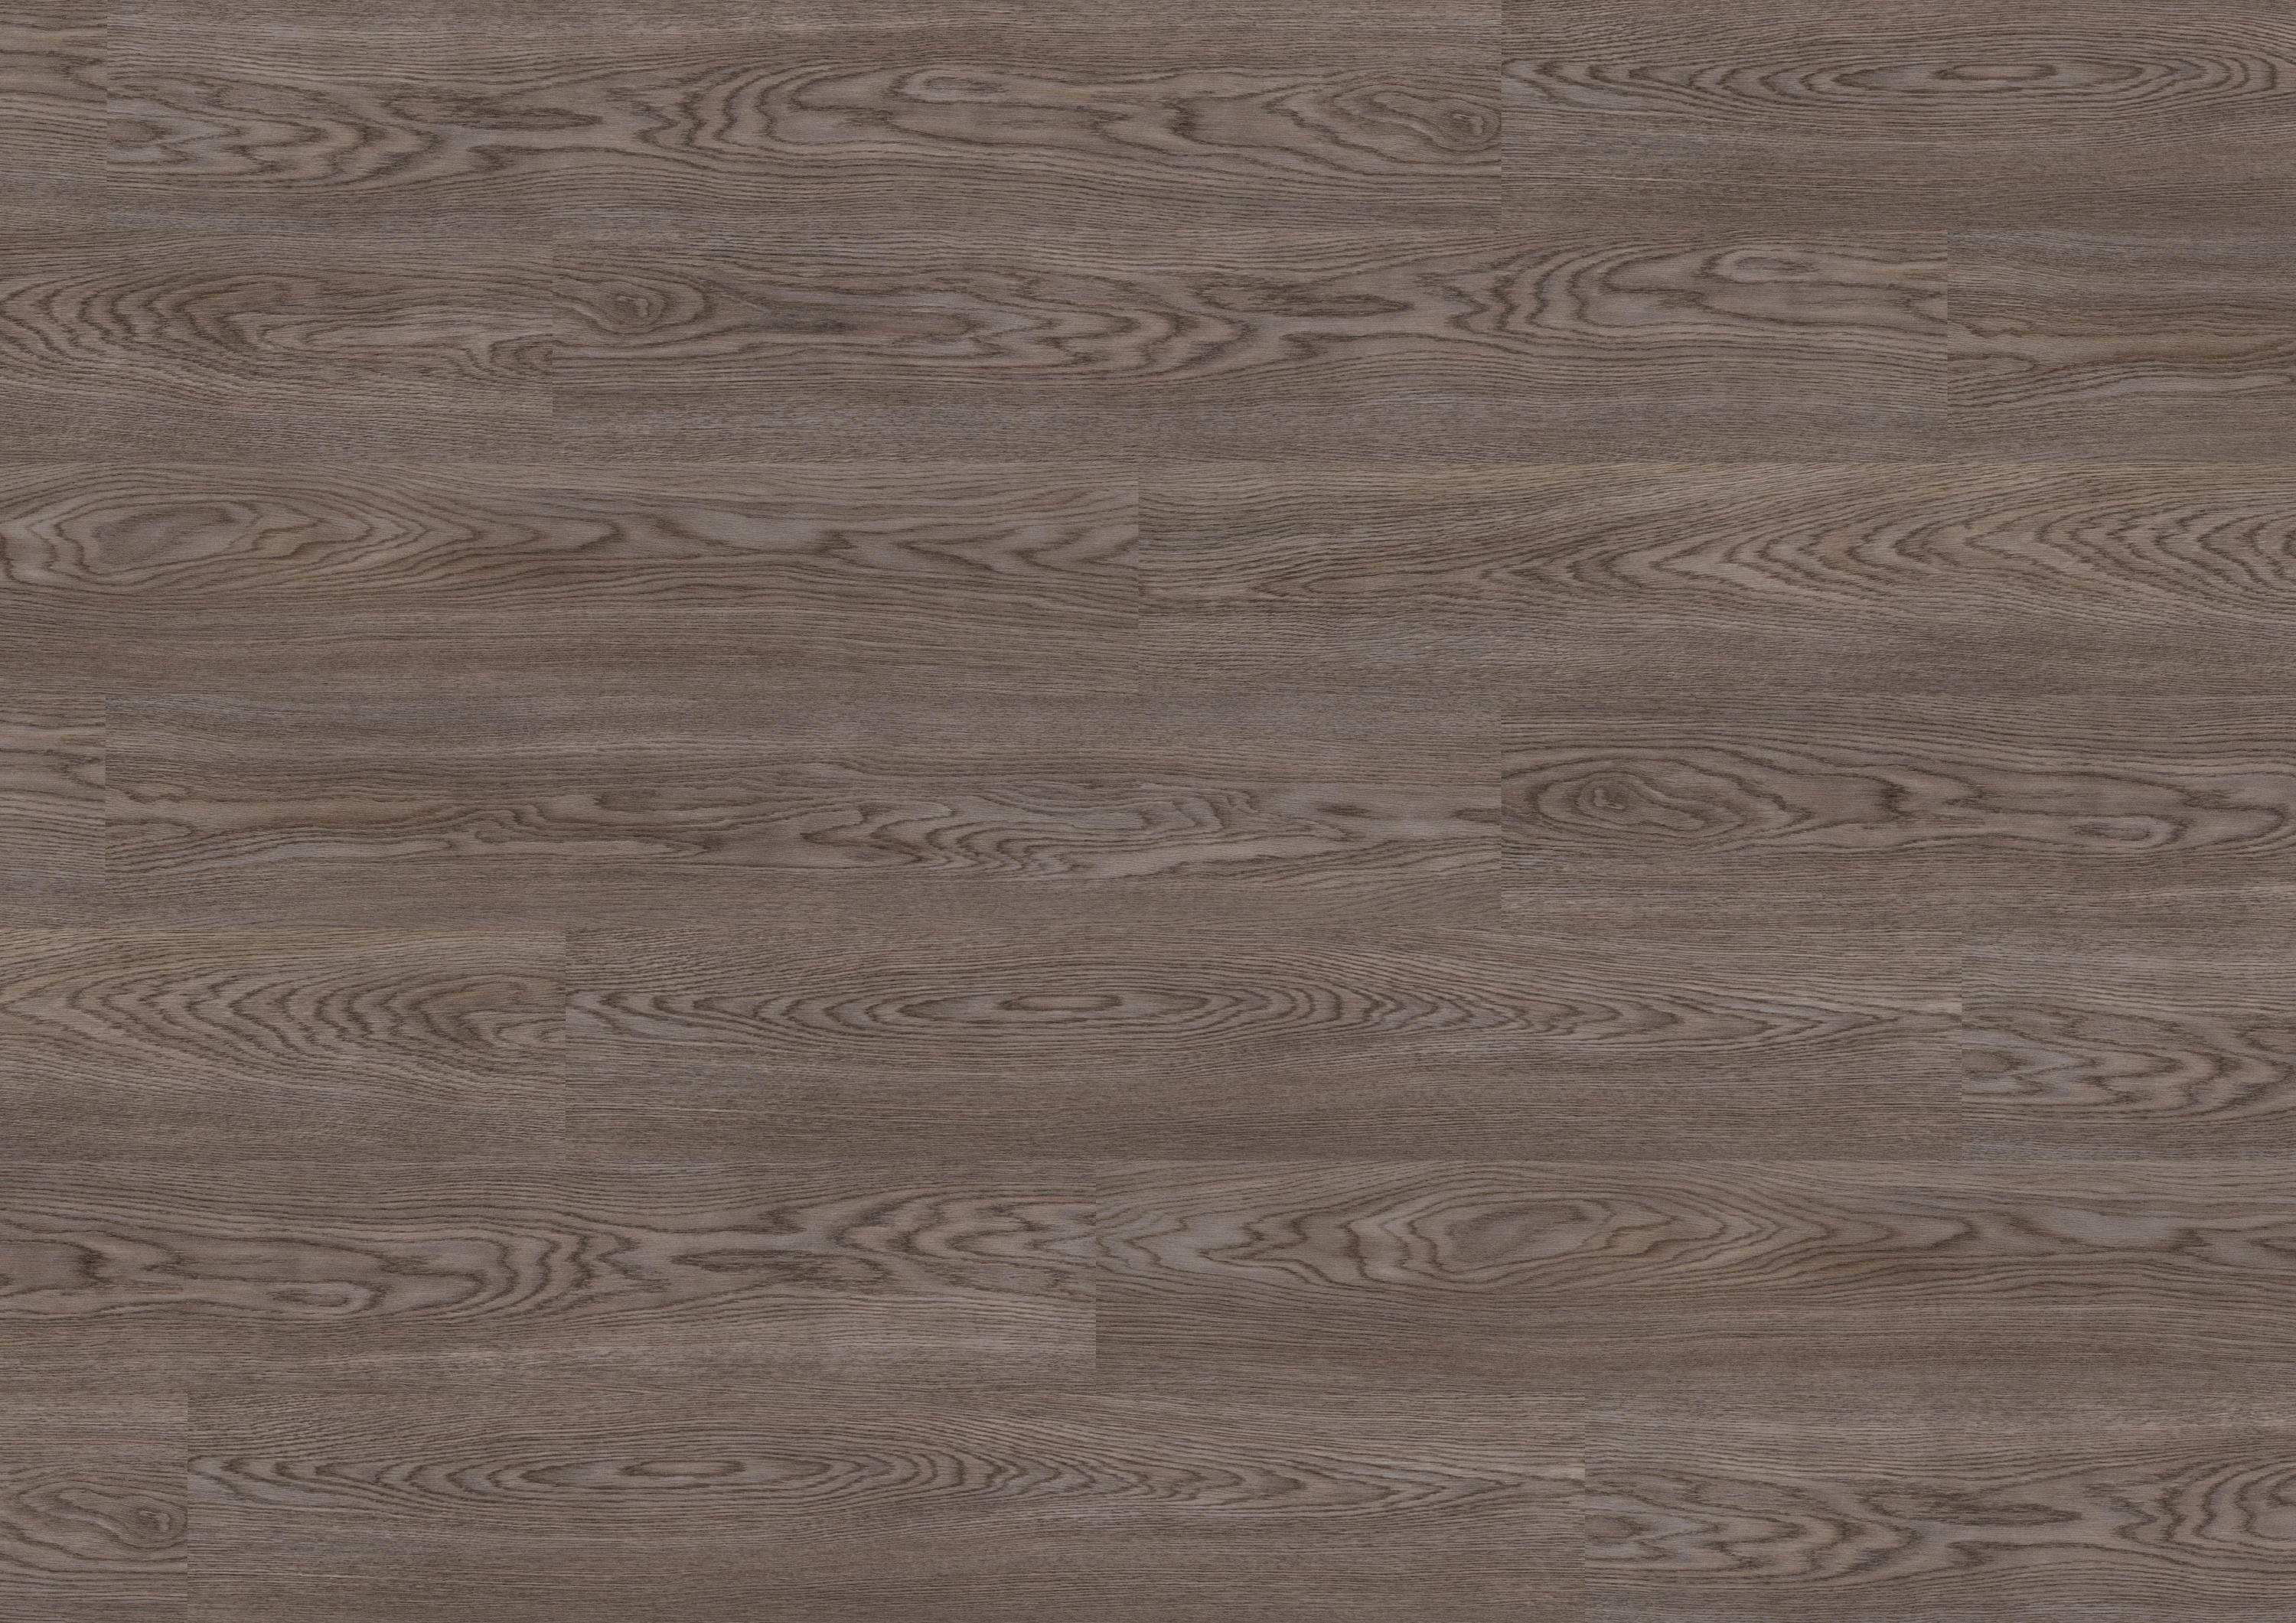 Wineo Purline 174 Planks Classic Oak Winter Synthetic Panels From Mats Inc Architonic